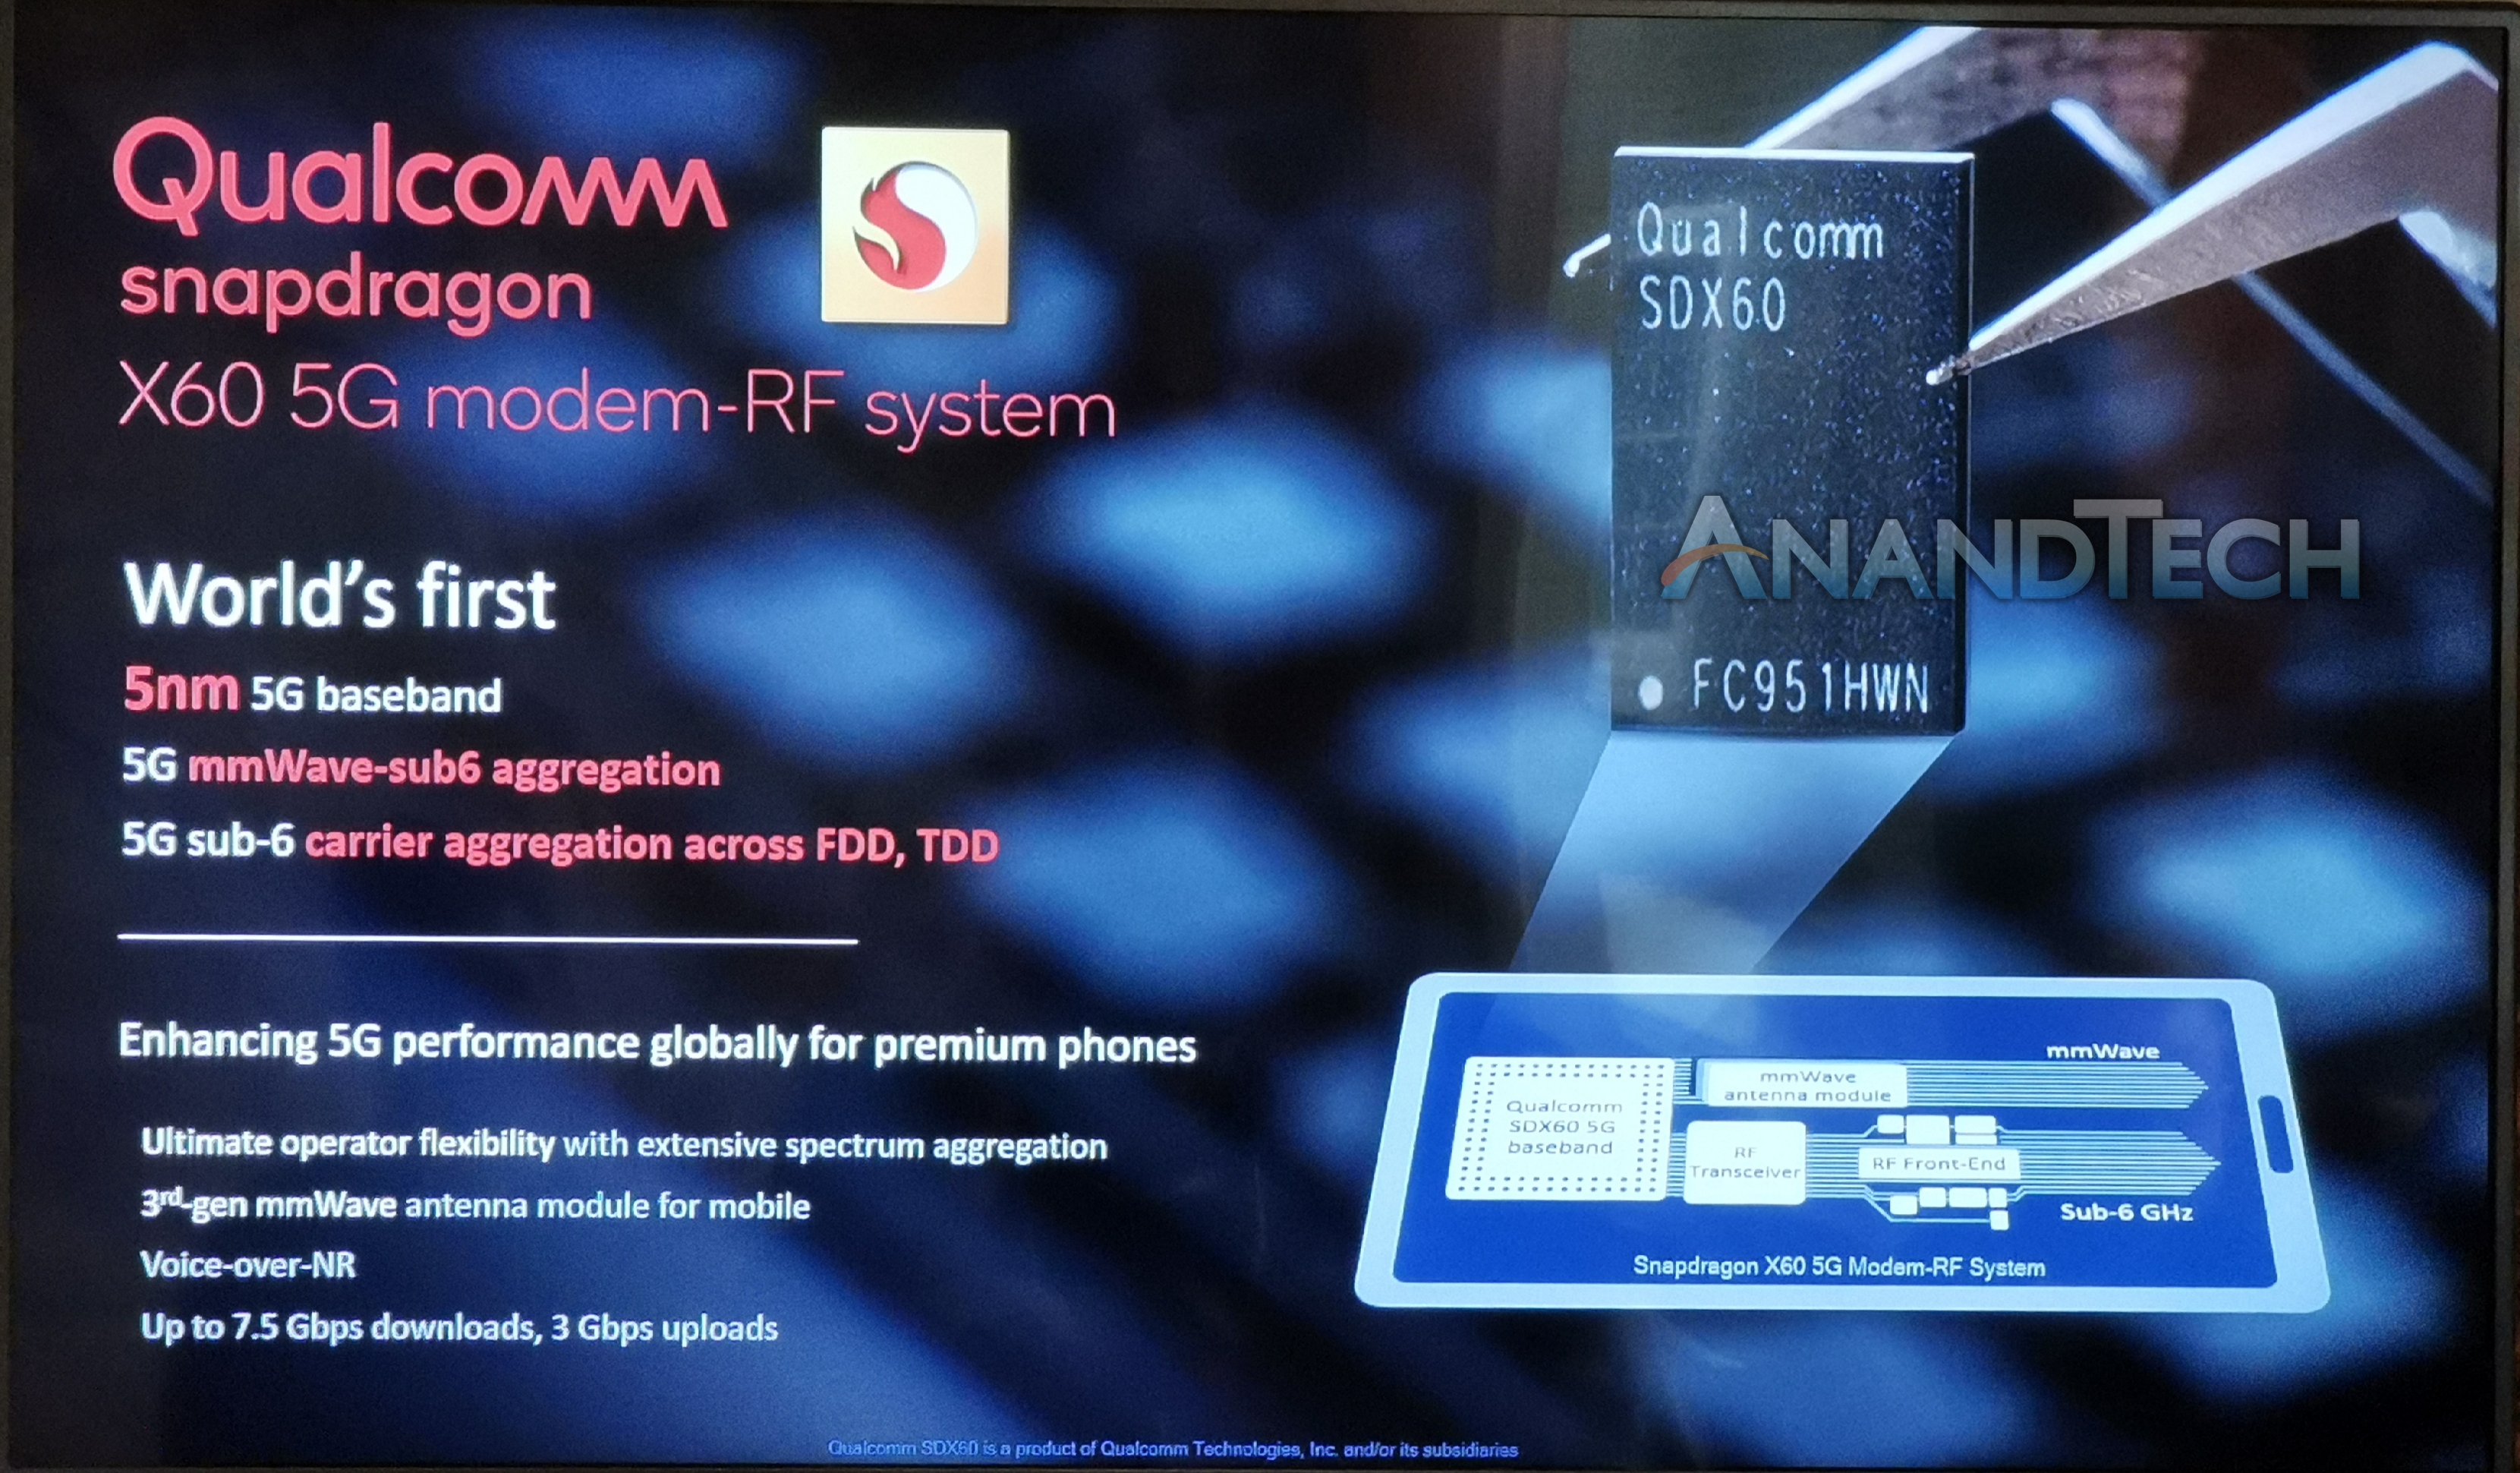 Qualcomm unveils its third-generation 5G modem called Snapdragon X60